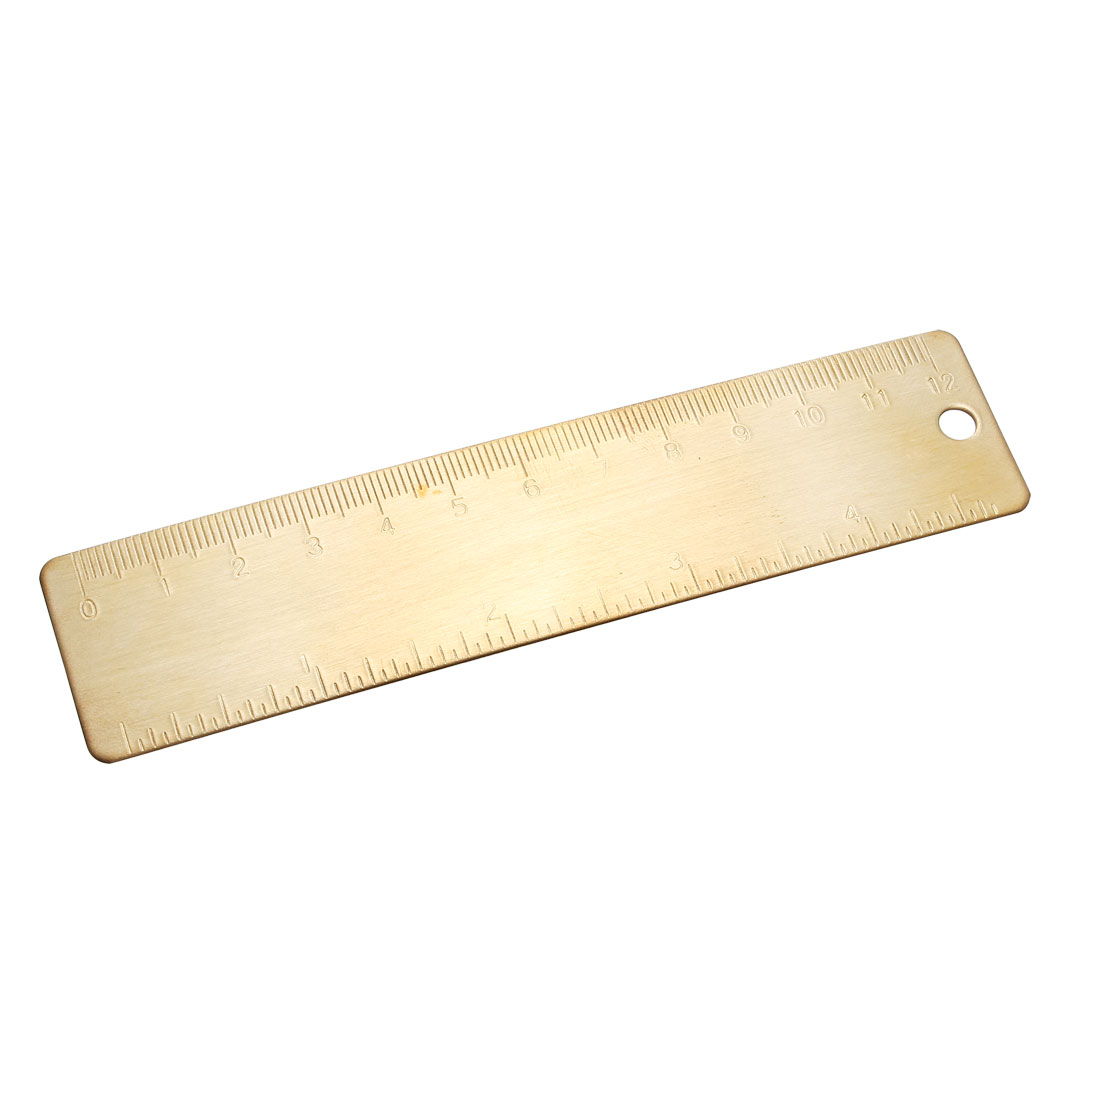 Straight Ruler 120mm Brass Measurement Tool Drawing Rulers with Hanging Hole